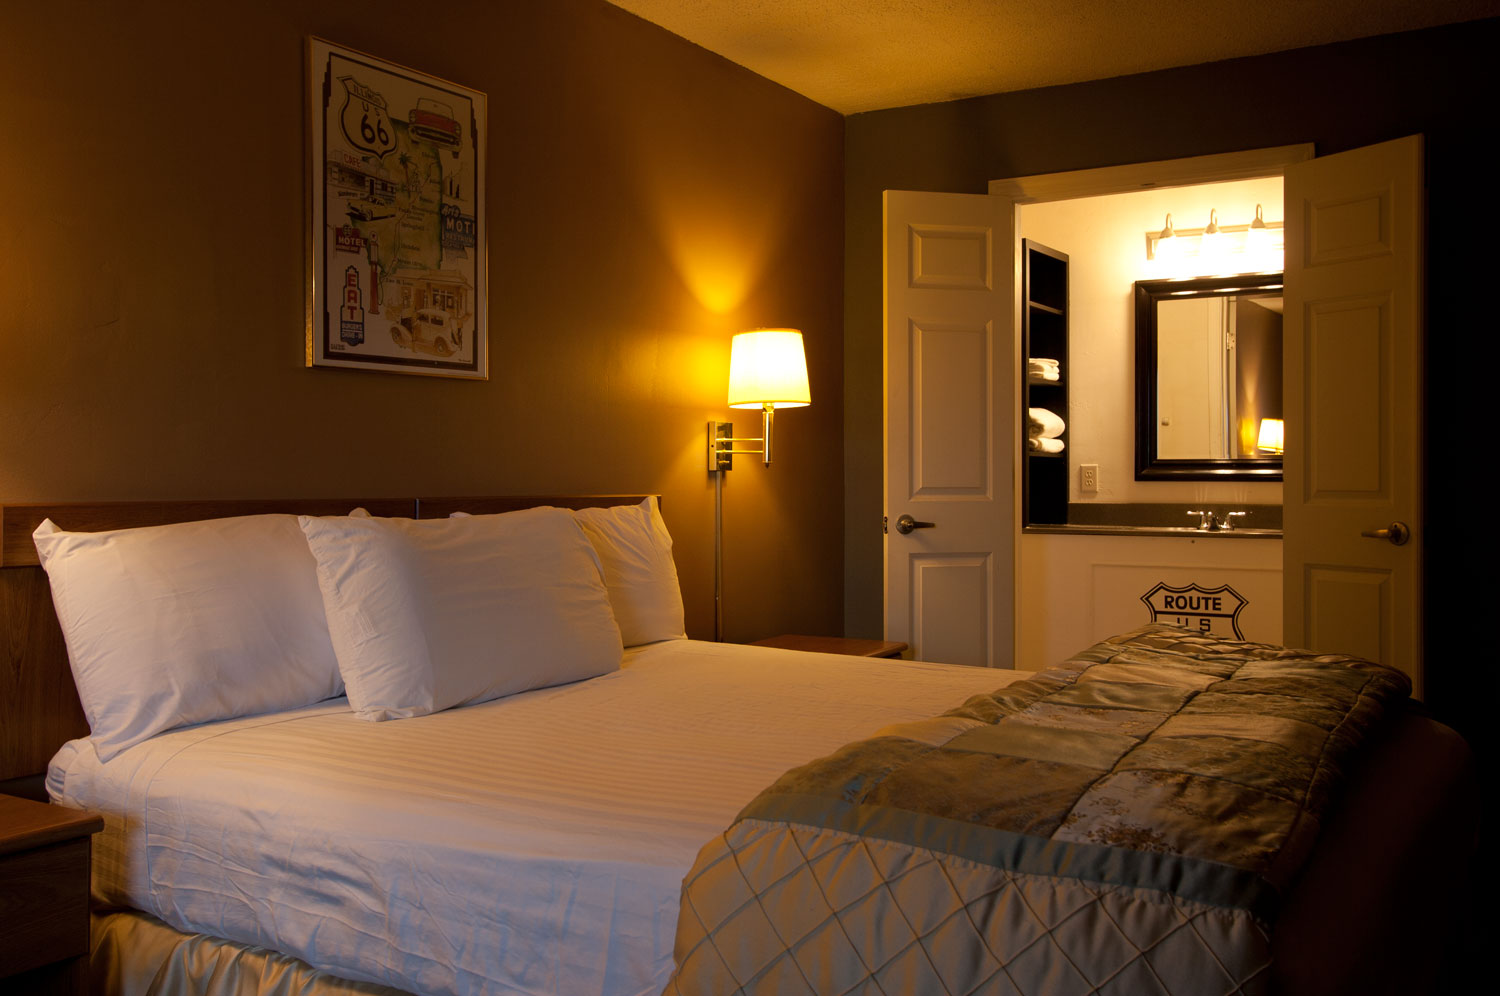 Route 66 Hotel Jaccuzi and Executive Suites - Family-Friendly Hotel | Route 66 Hotel and